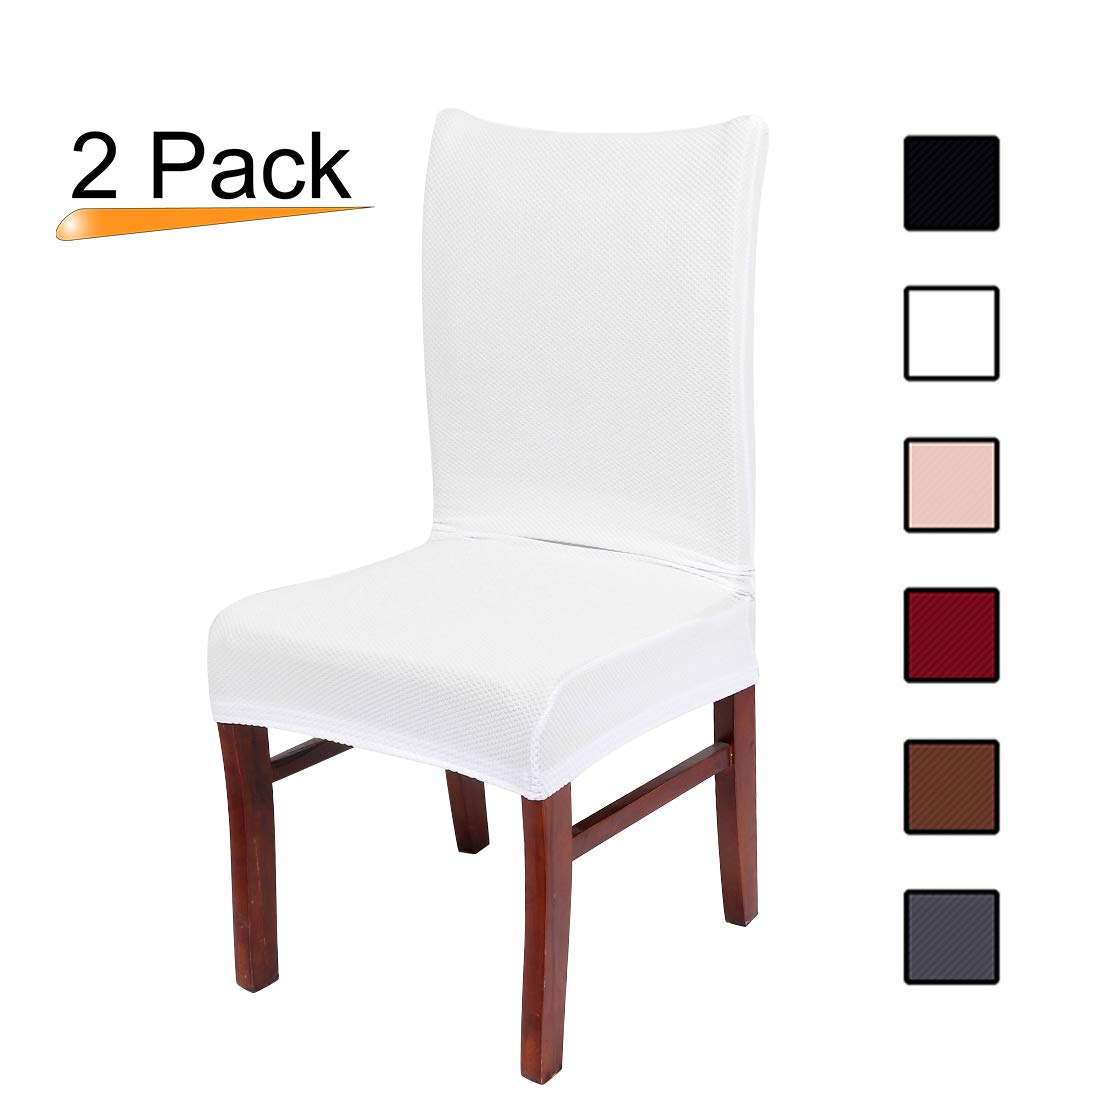 Colorxy Stretch Dining Room Chair Slipcovers - Spandex Fabric Removable Chair Protector Jacquard knitted Home Decor Set of 2, White